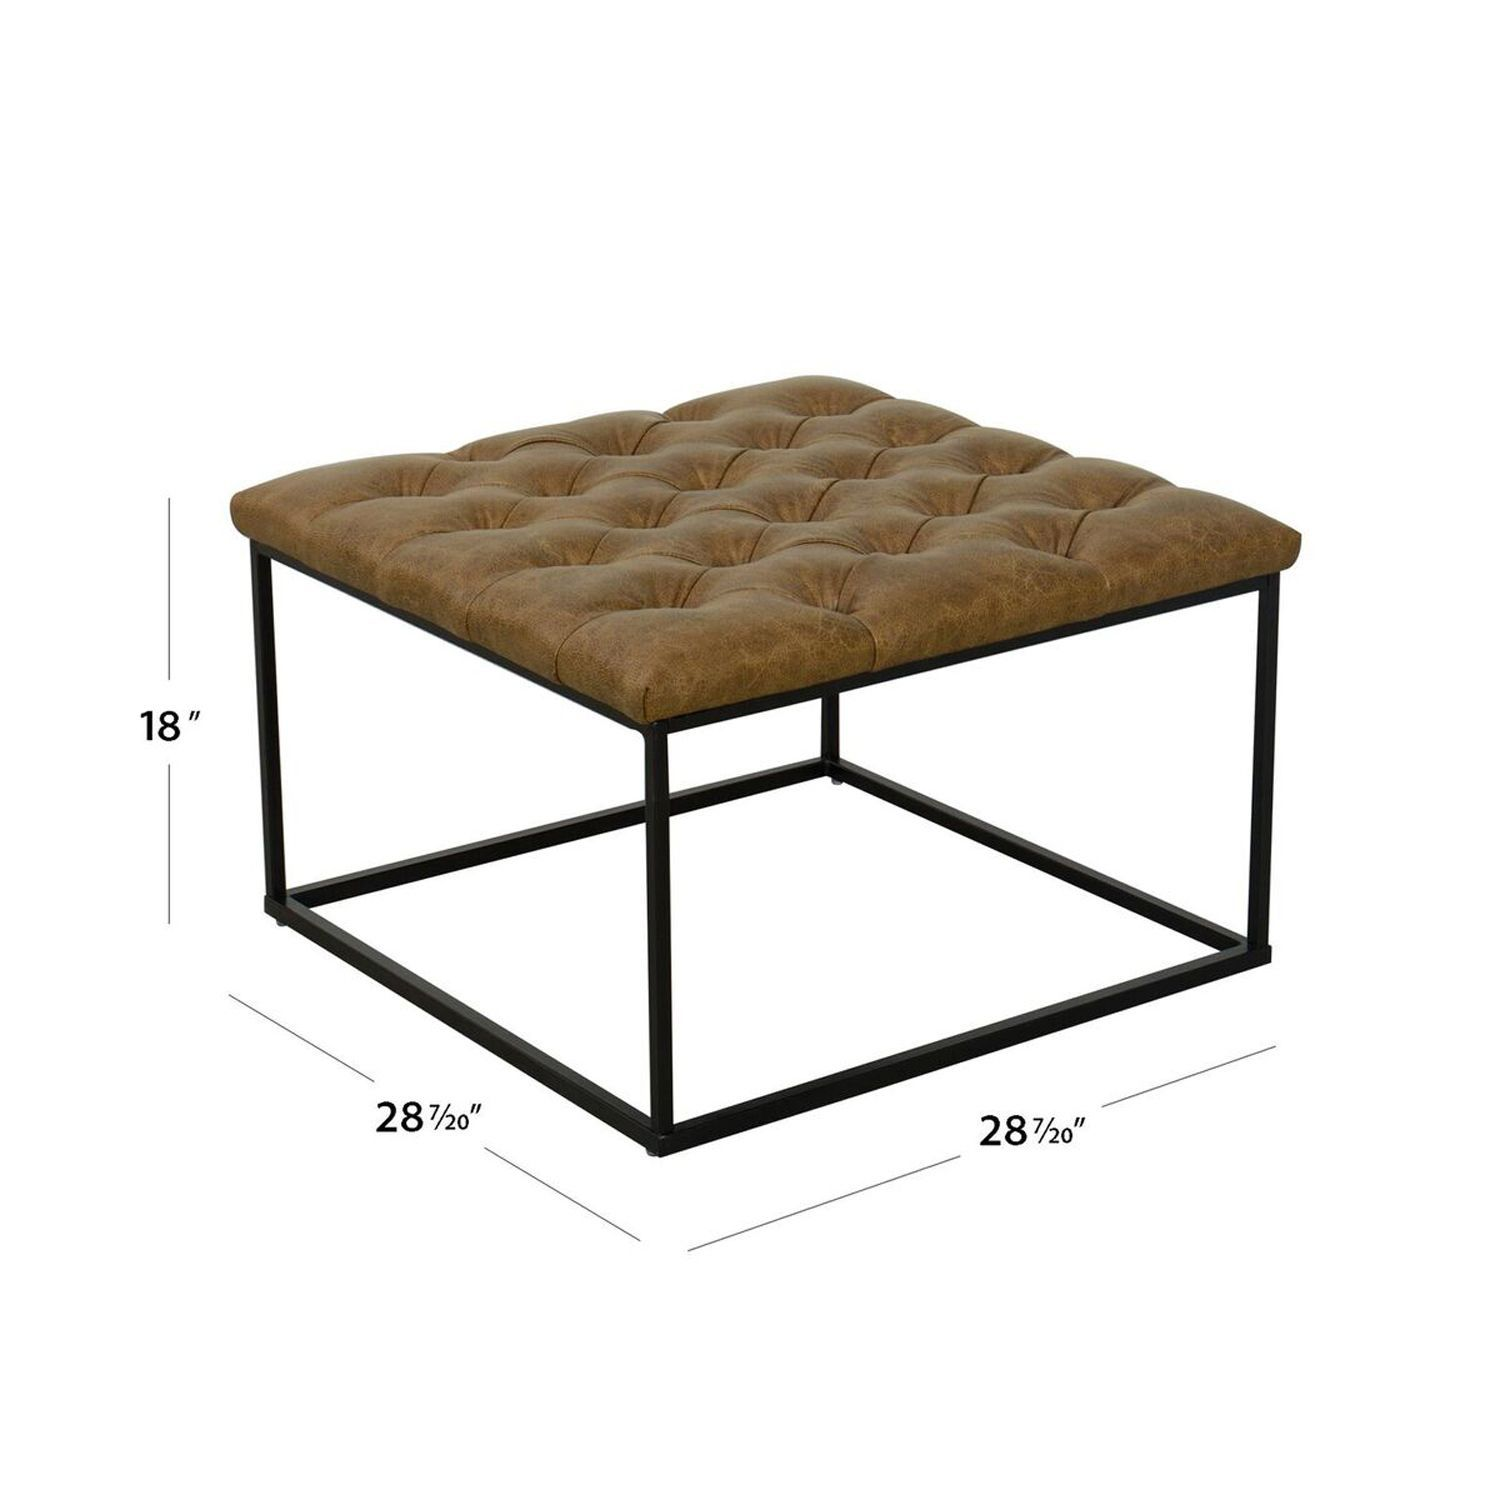 Fabulous Draper Light Brown Ottoman With Button Tufting In 2019 Ibusinesslaw Wood Chair Design Ideas Ibusinesslaworg